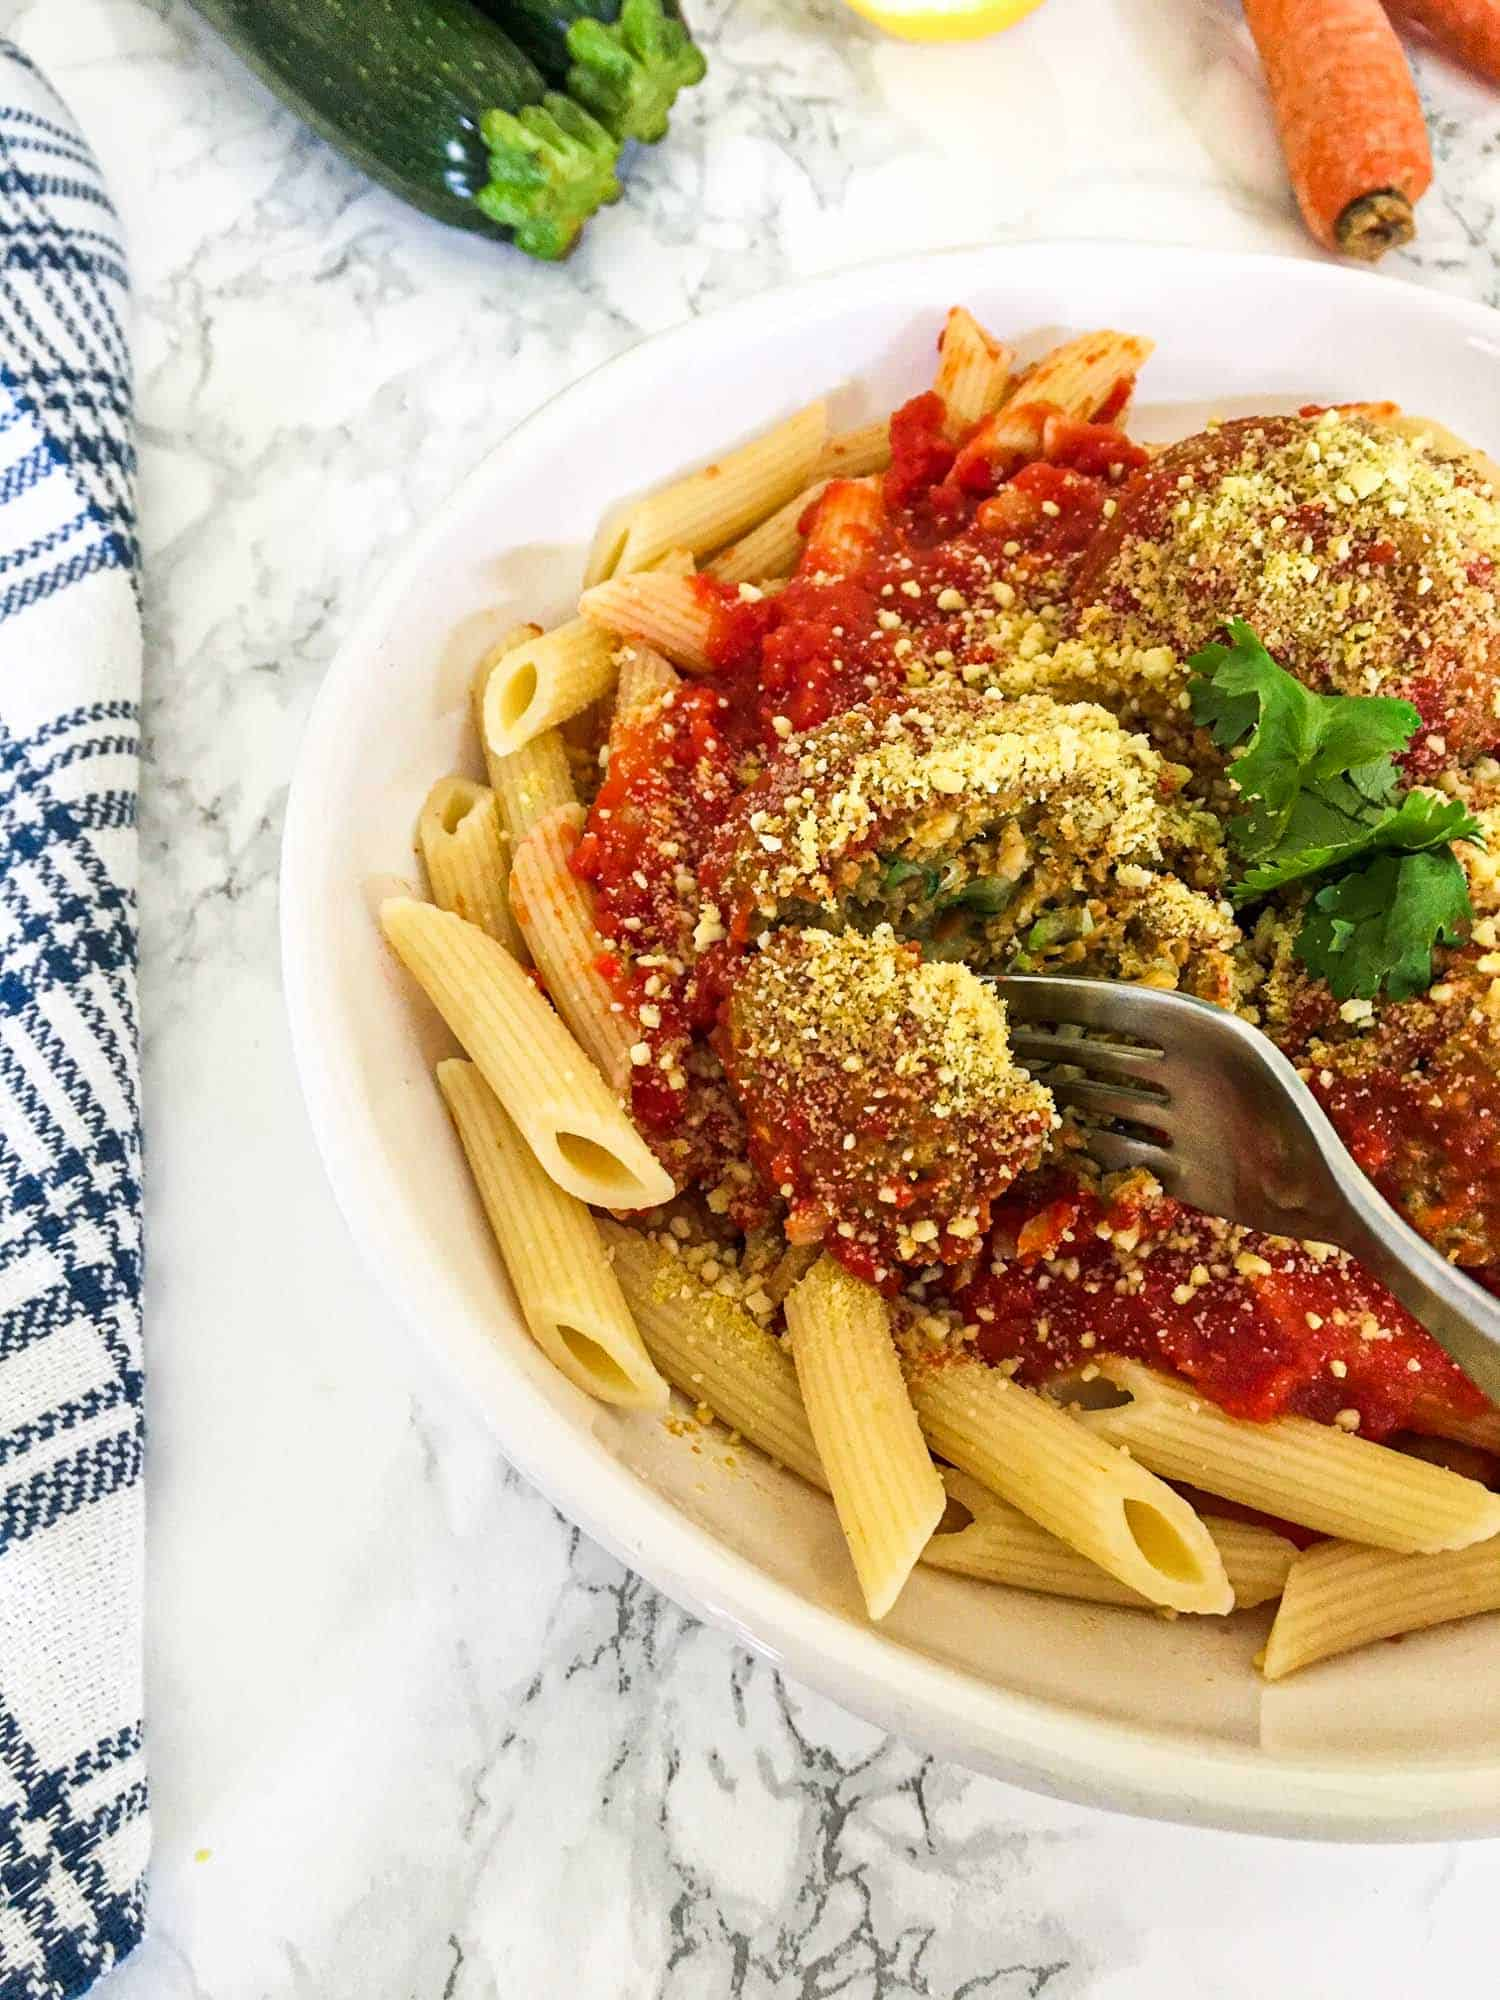 fork cutting through vegan meatball on bed of pasta